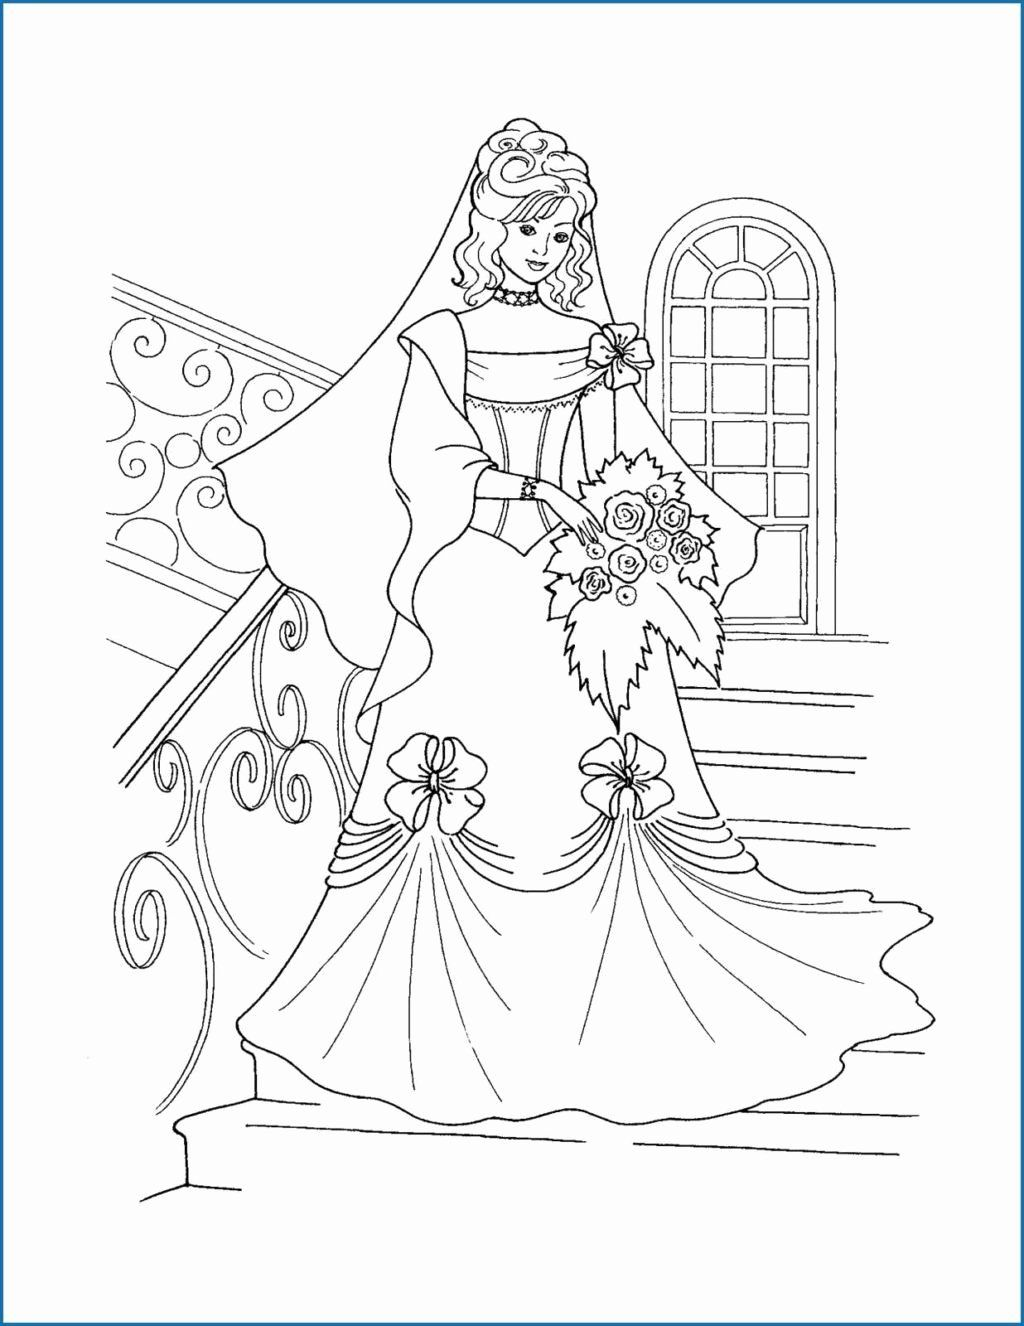 Printable Barbie Princess Coloring Pages For Kids Cool2bkids Barbie Coloring Pages Barbie Drawing Barbie Coloring